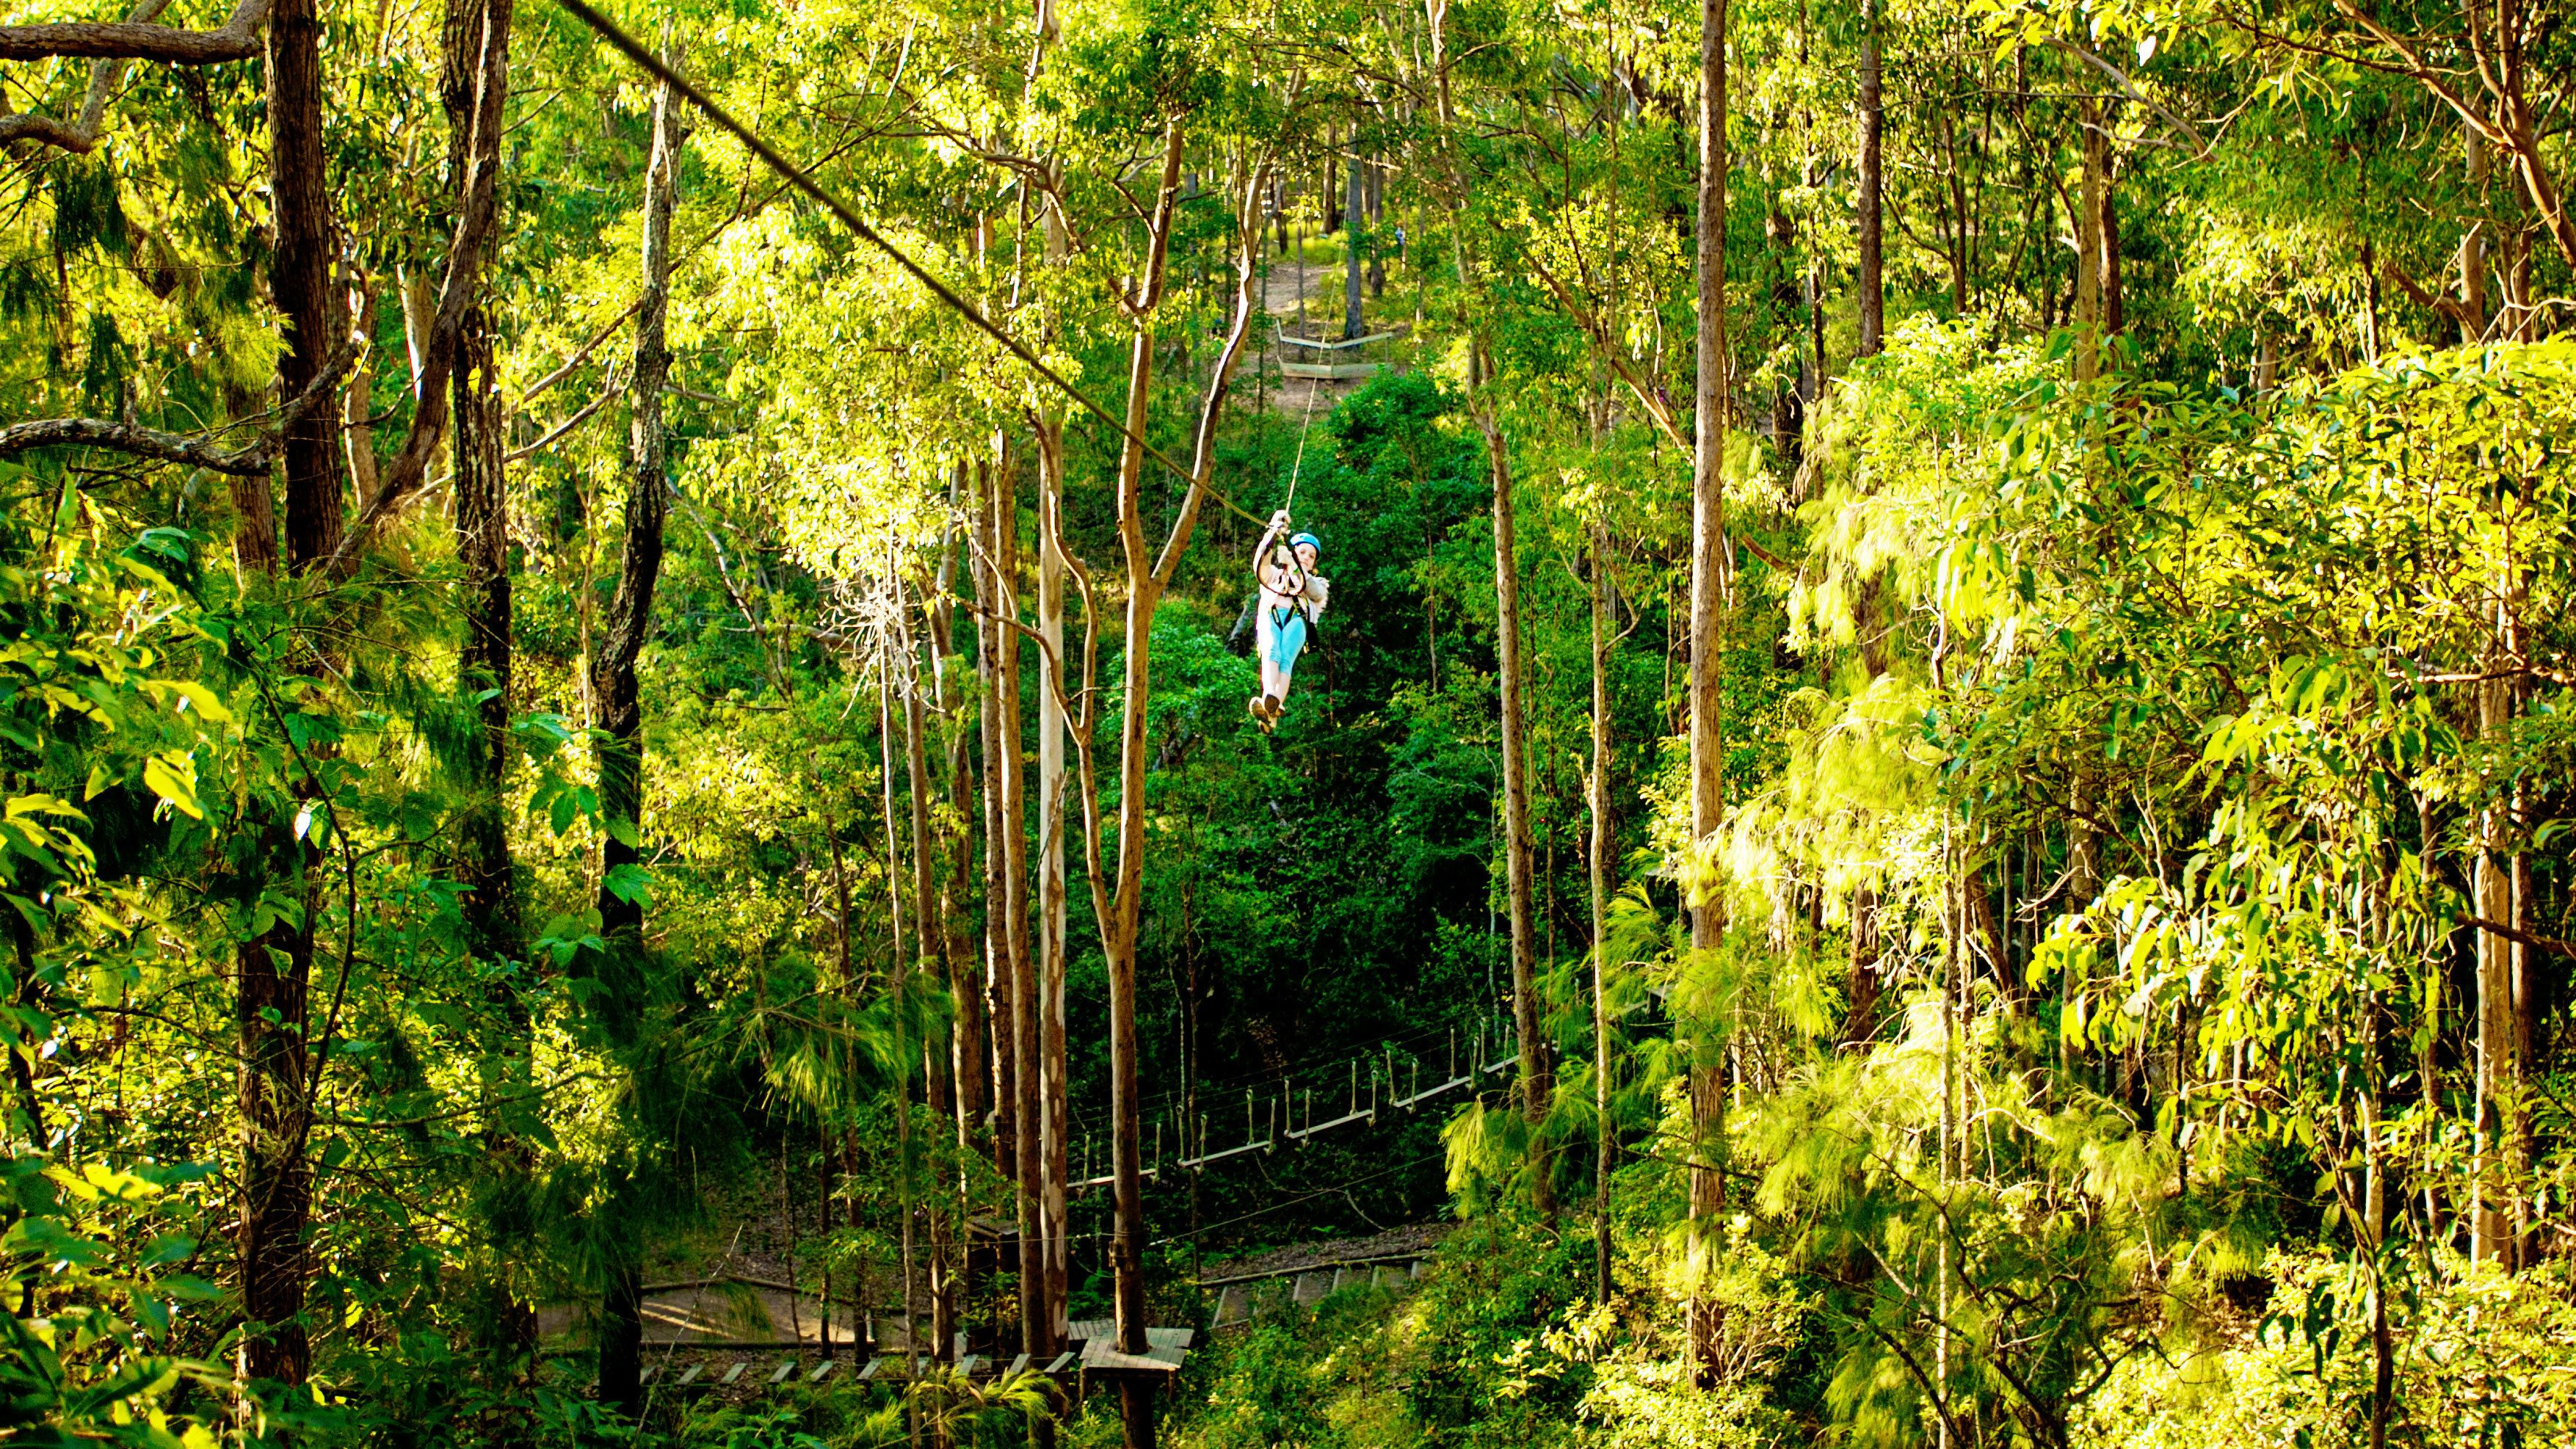 Woman ziplining through the trees in Australia